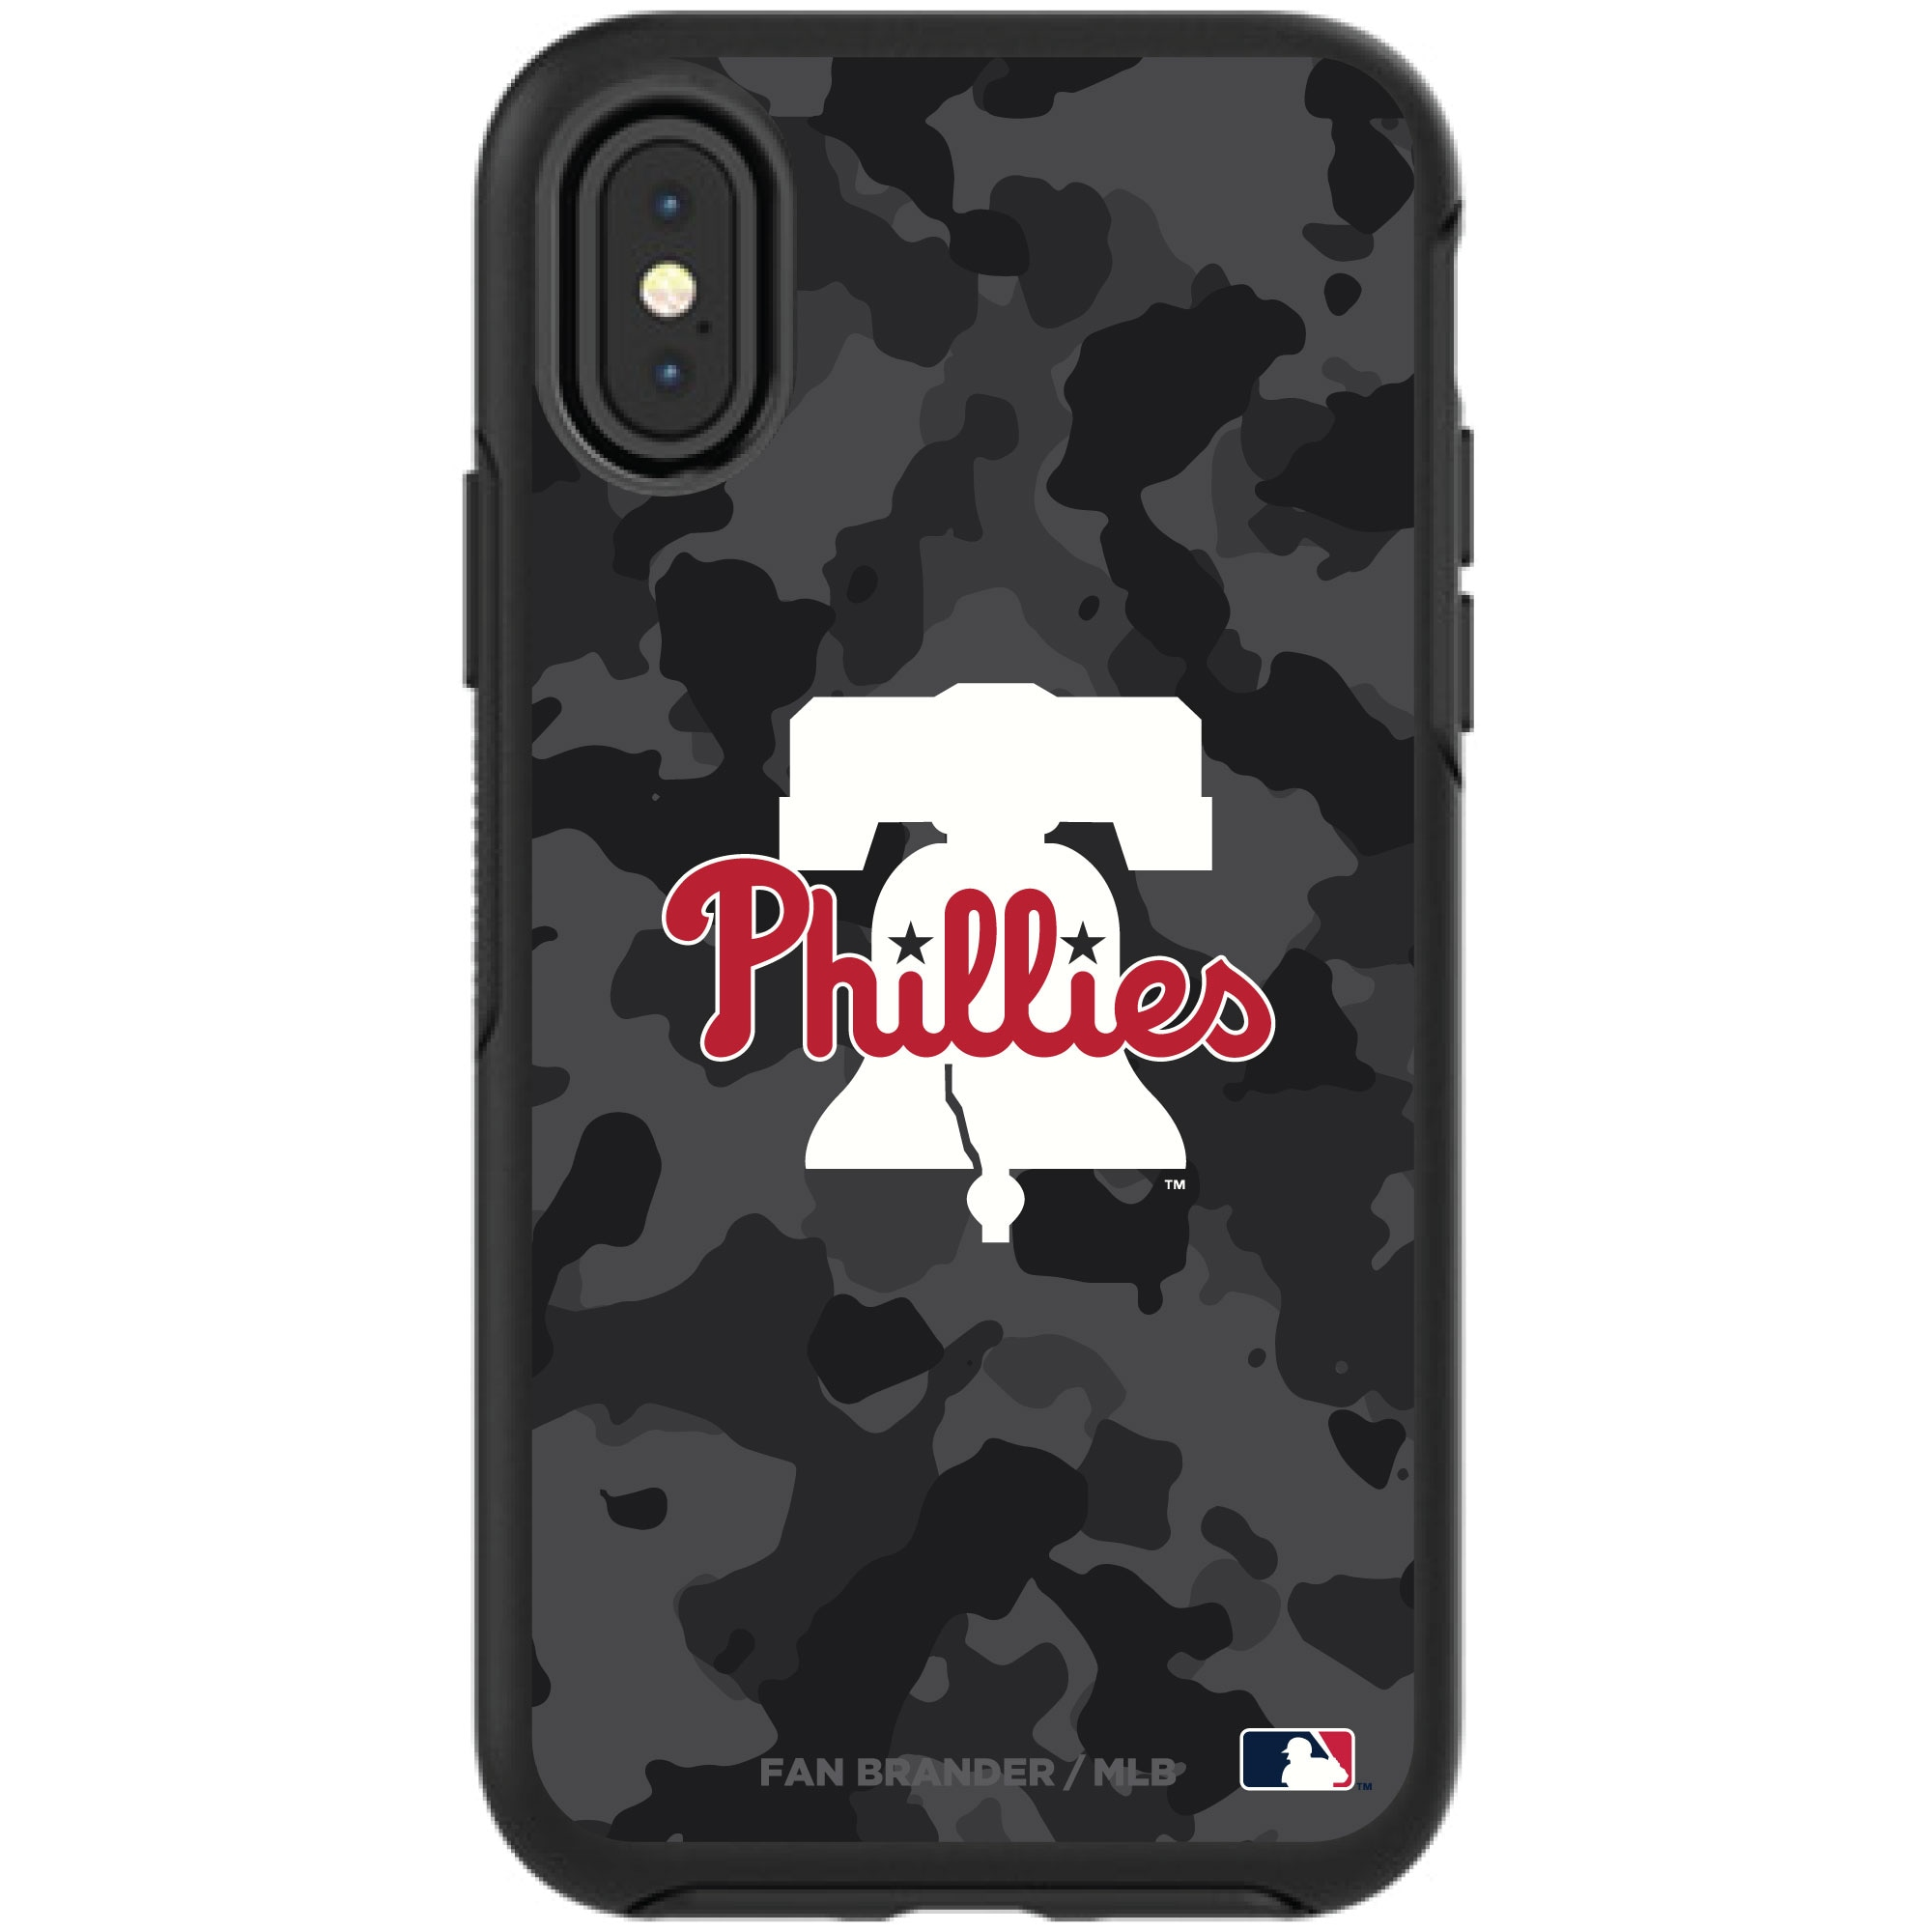 Philadelphia Phillies OtterBox Urban Camo Design Symmetry Series iPhone Case - Black